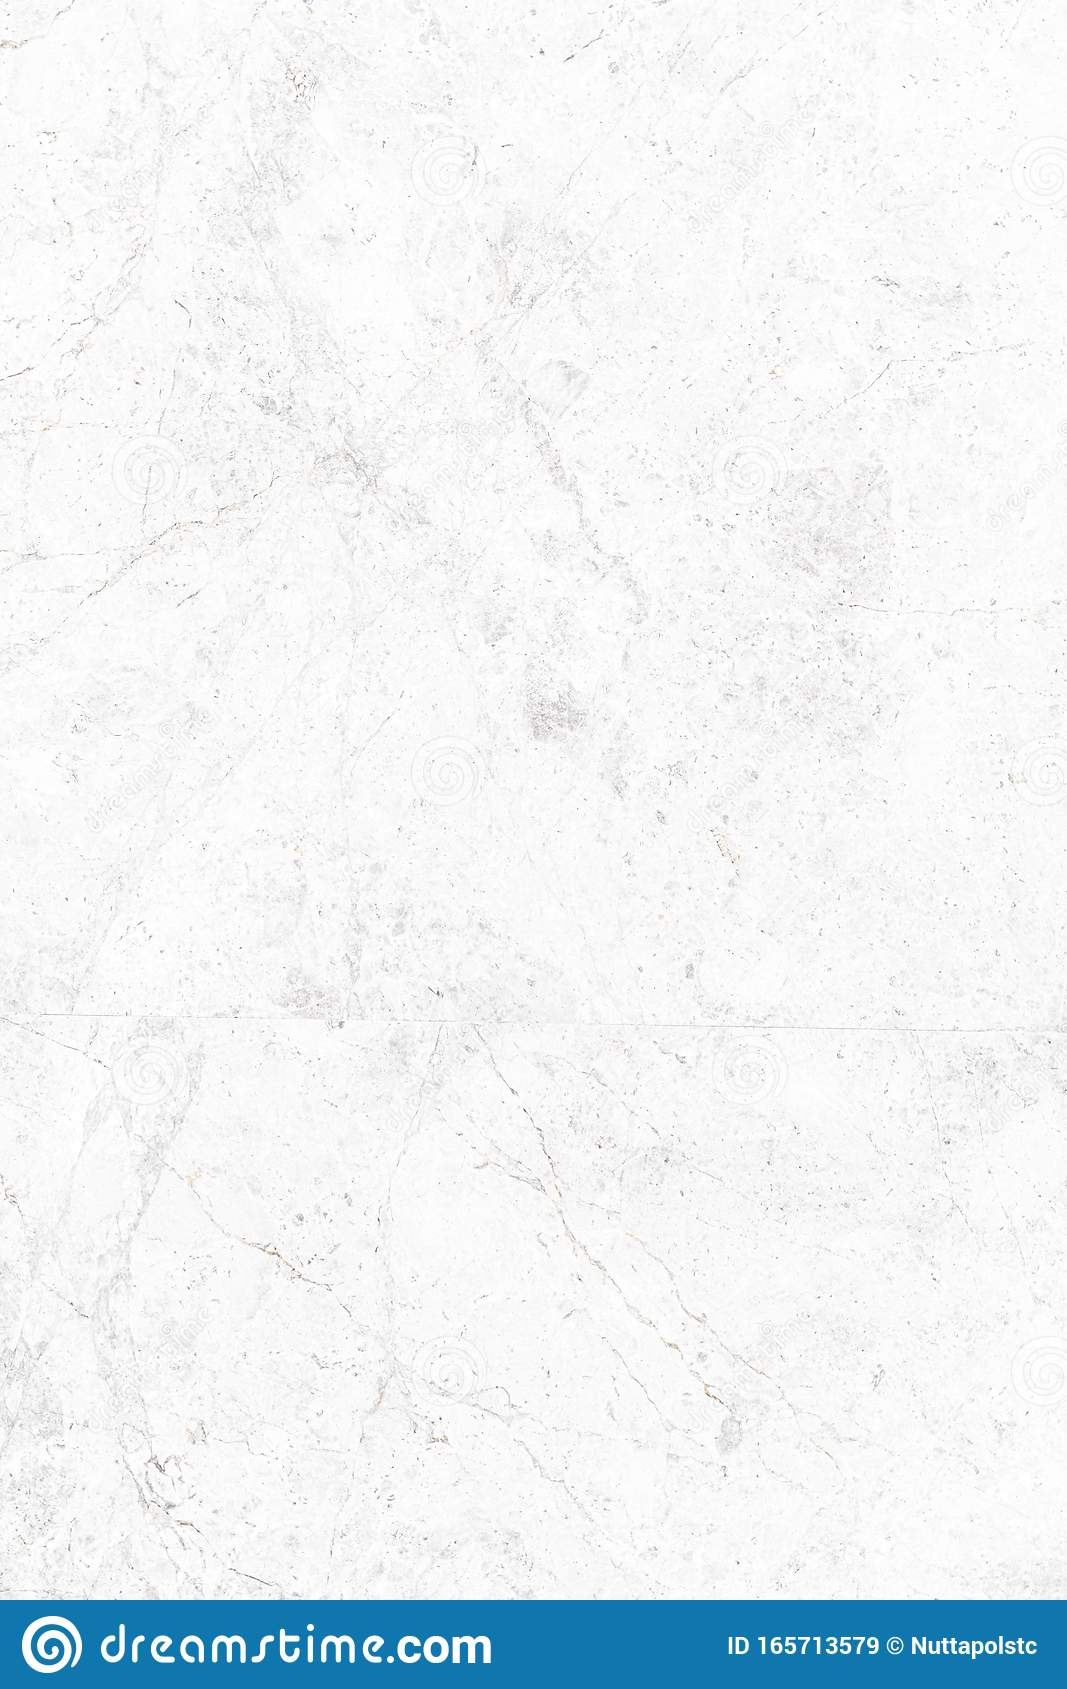 White Marble Seamless : white, marble, seamless, Seamless, White, Marble, Texture, Abstract, Background, Pattern, Resolution, Stock, Image, Deluxe,, Decorative:, 165713579